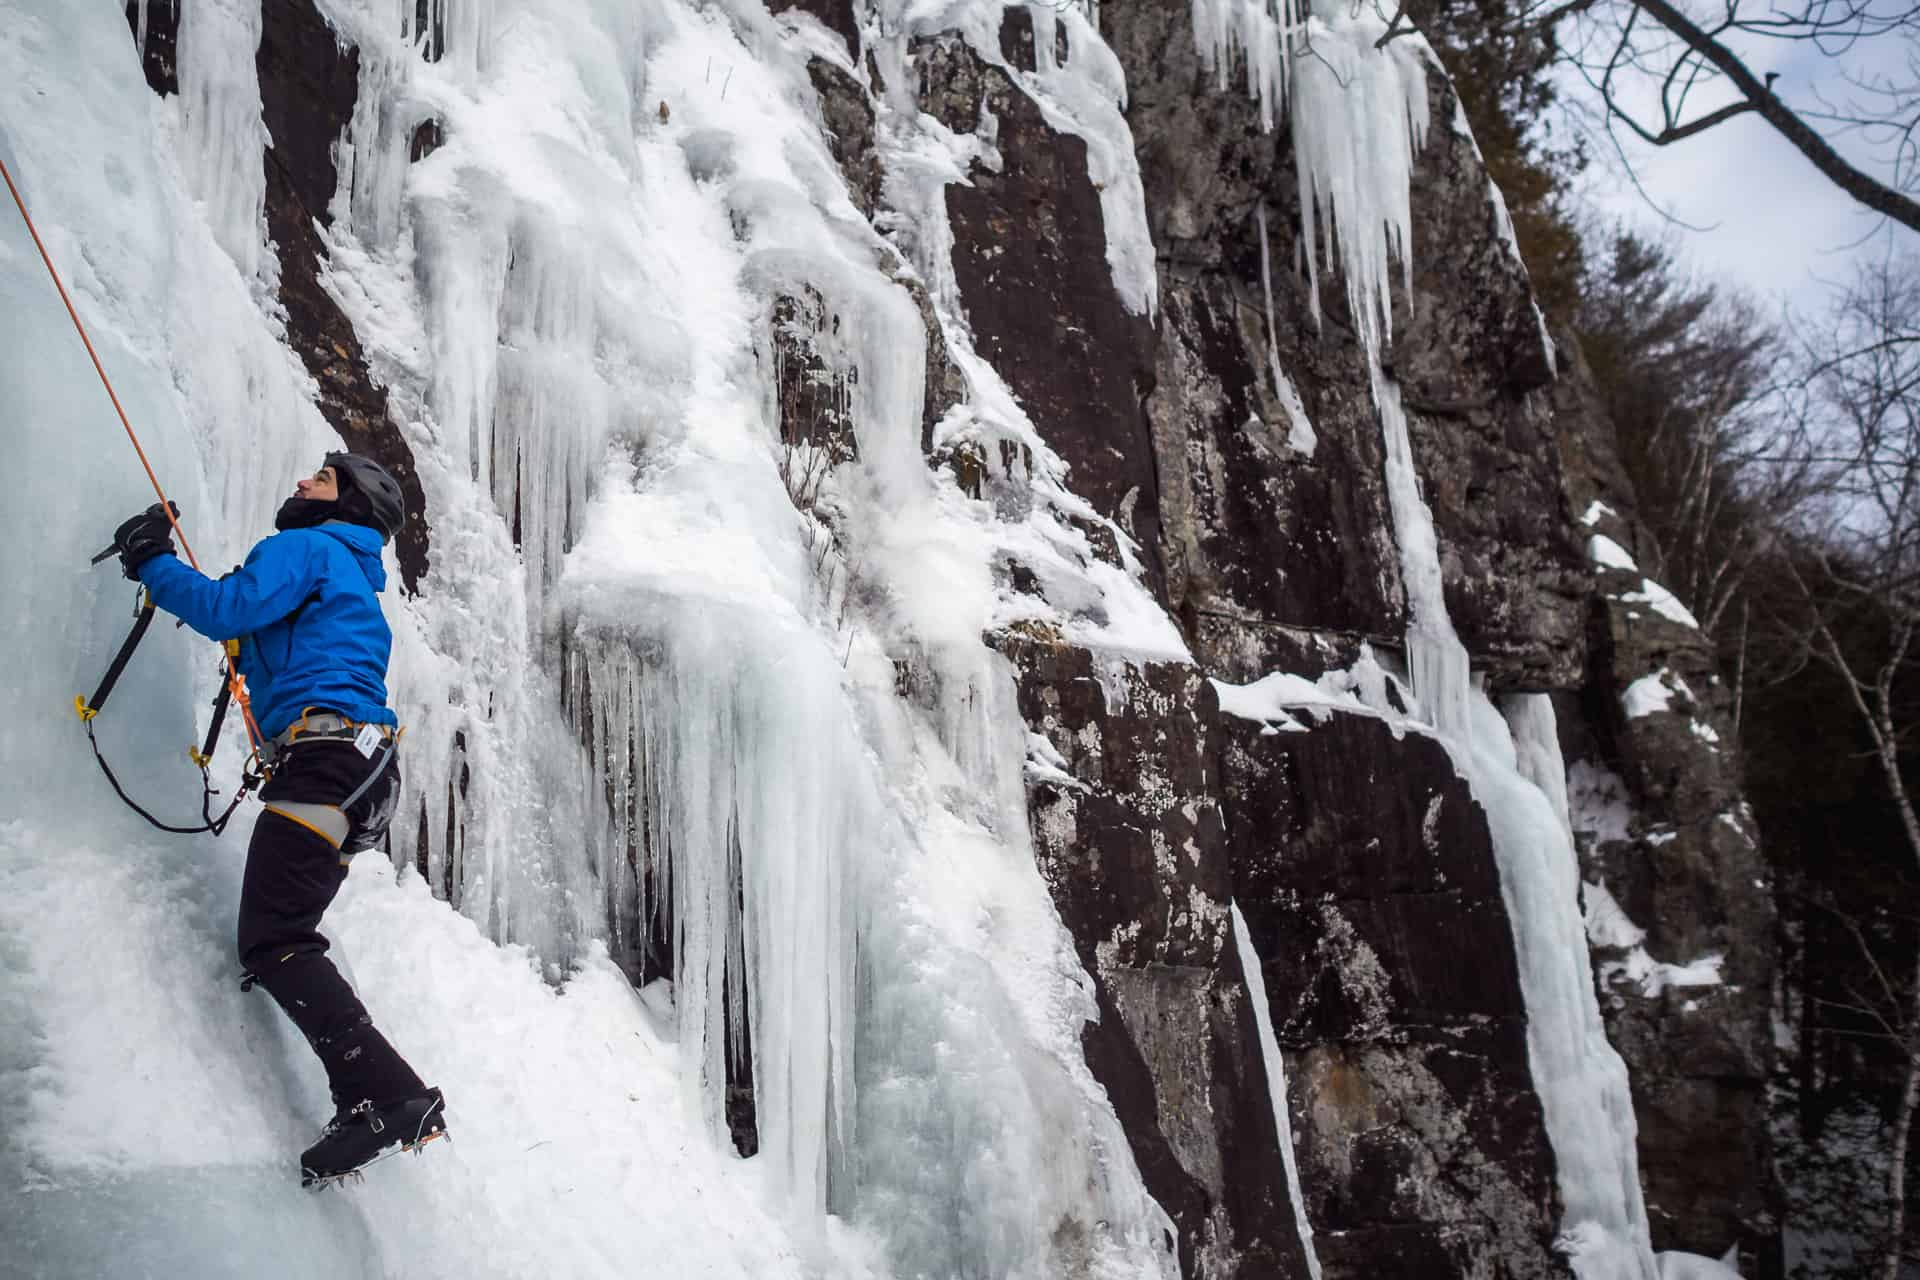 A man climb a frozen waterfall after a fatbike approach